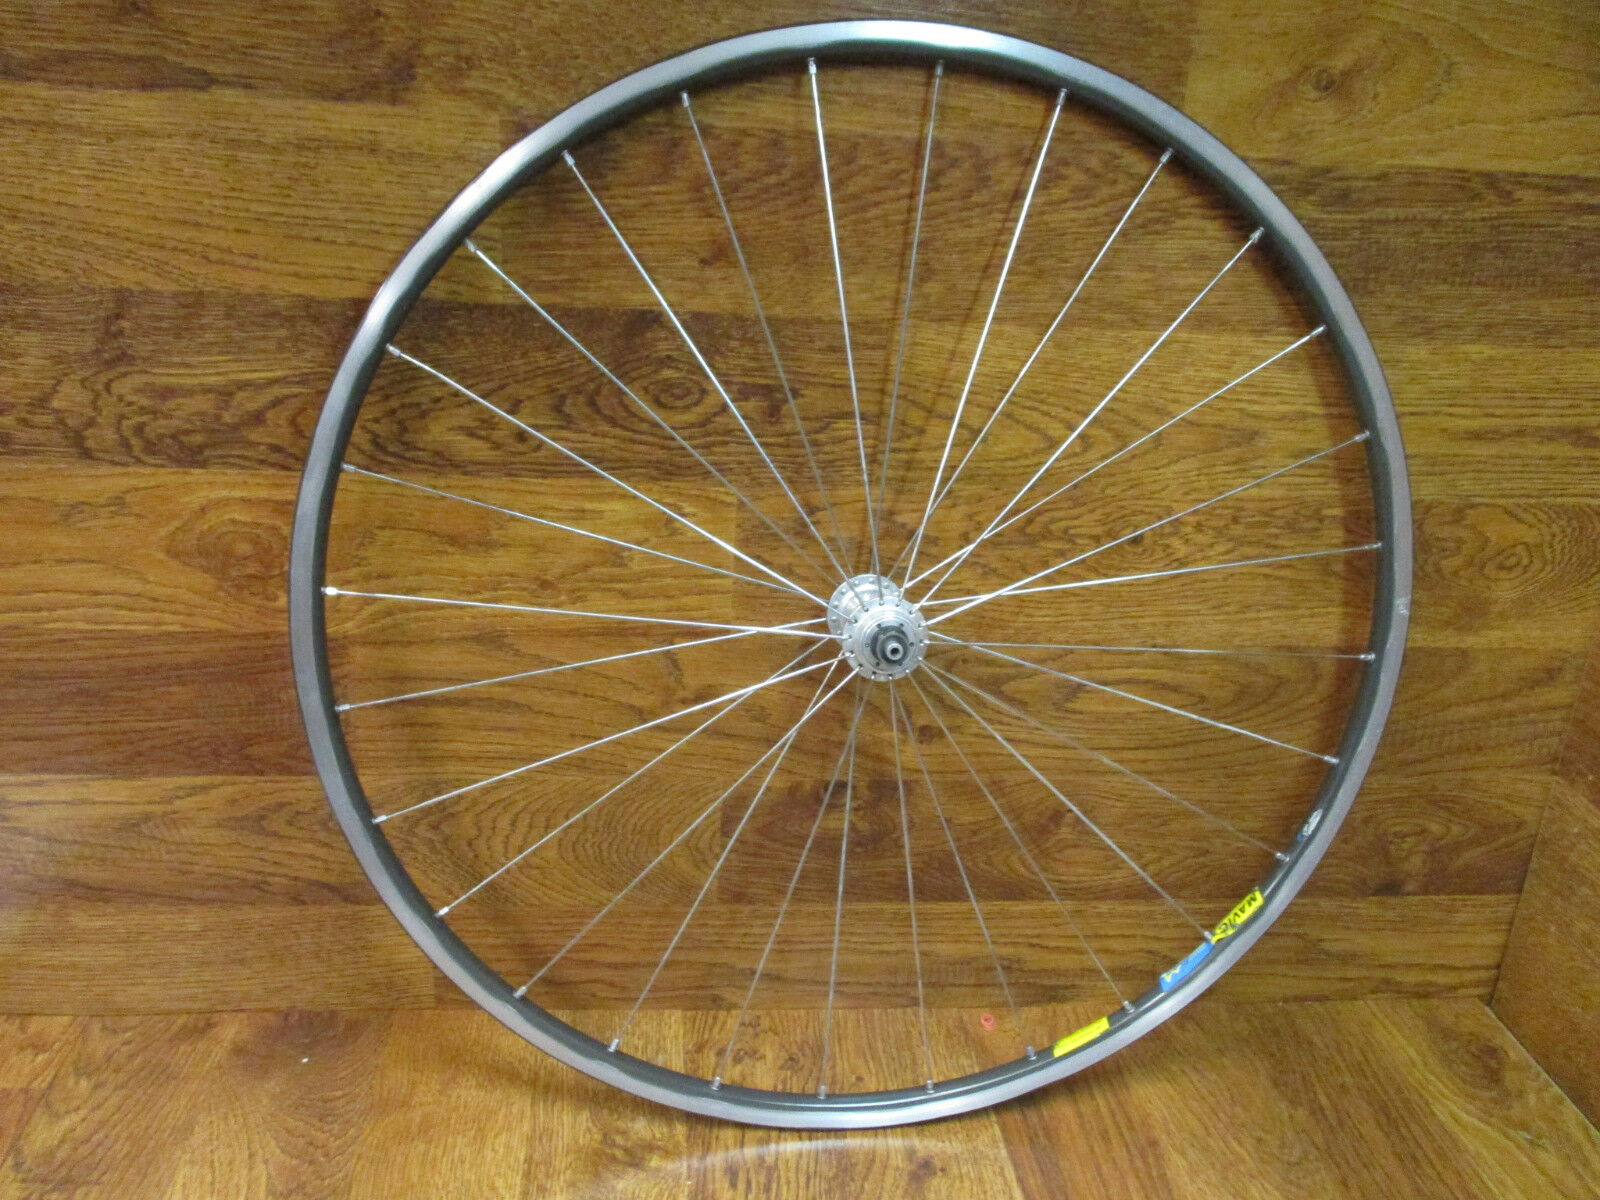 VINTAGE MAVIC OPEN 4 CD 700C CLINCHER FRONT WHEEL 28H 100 x 9mm QR ENGRAVED HUB